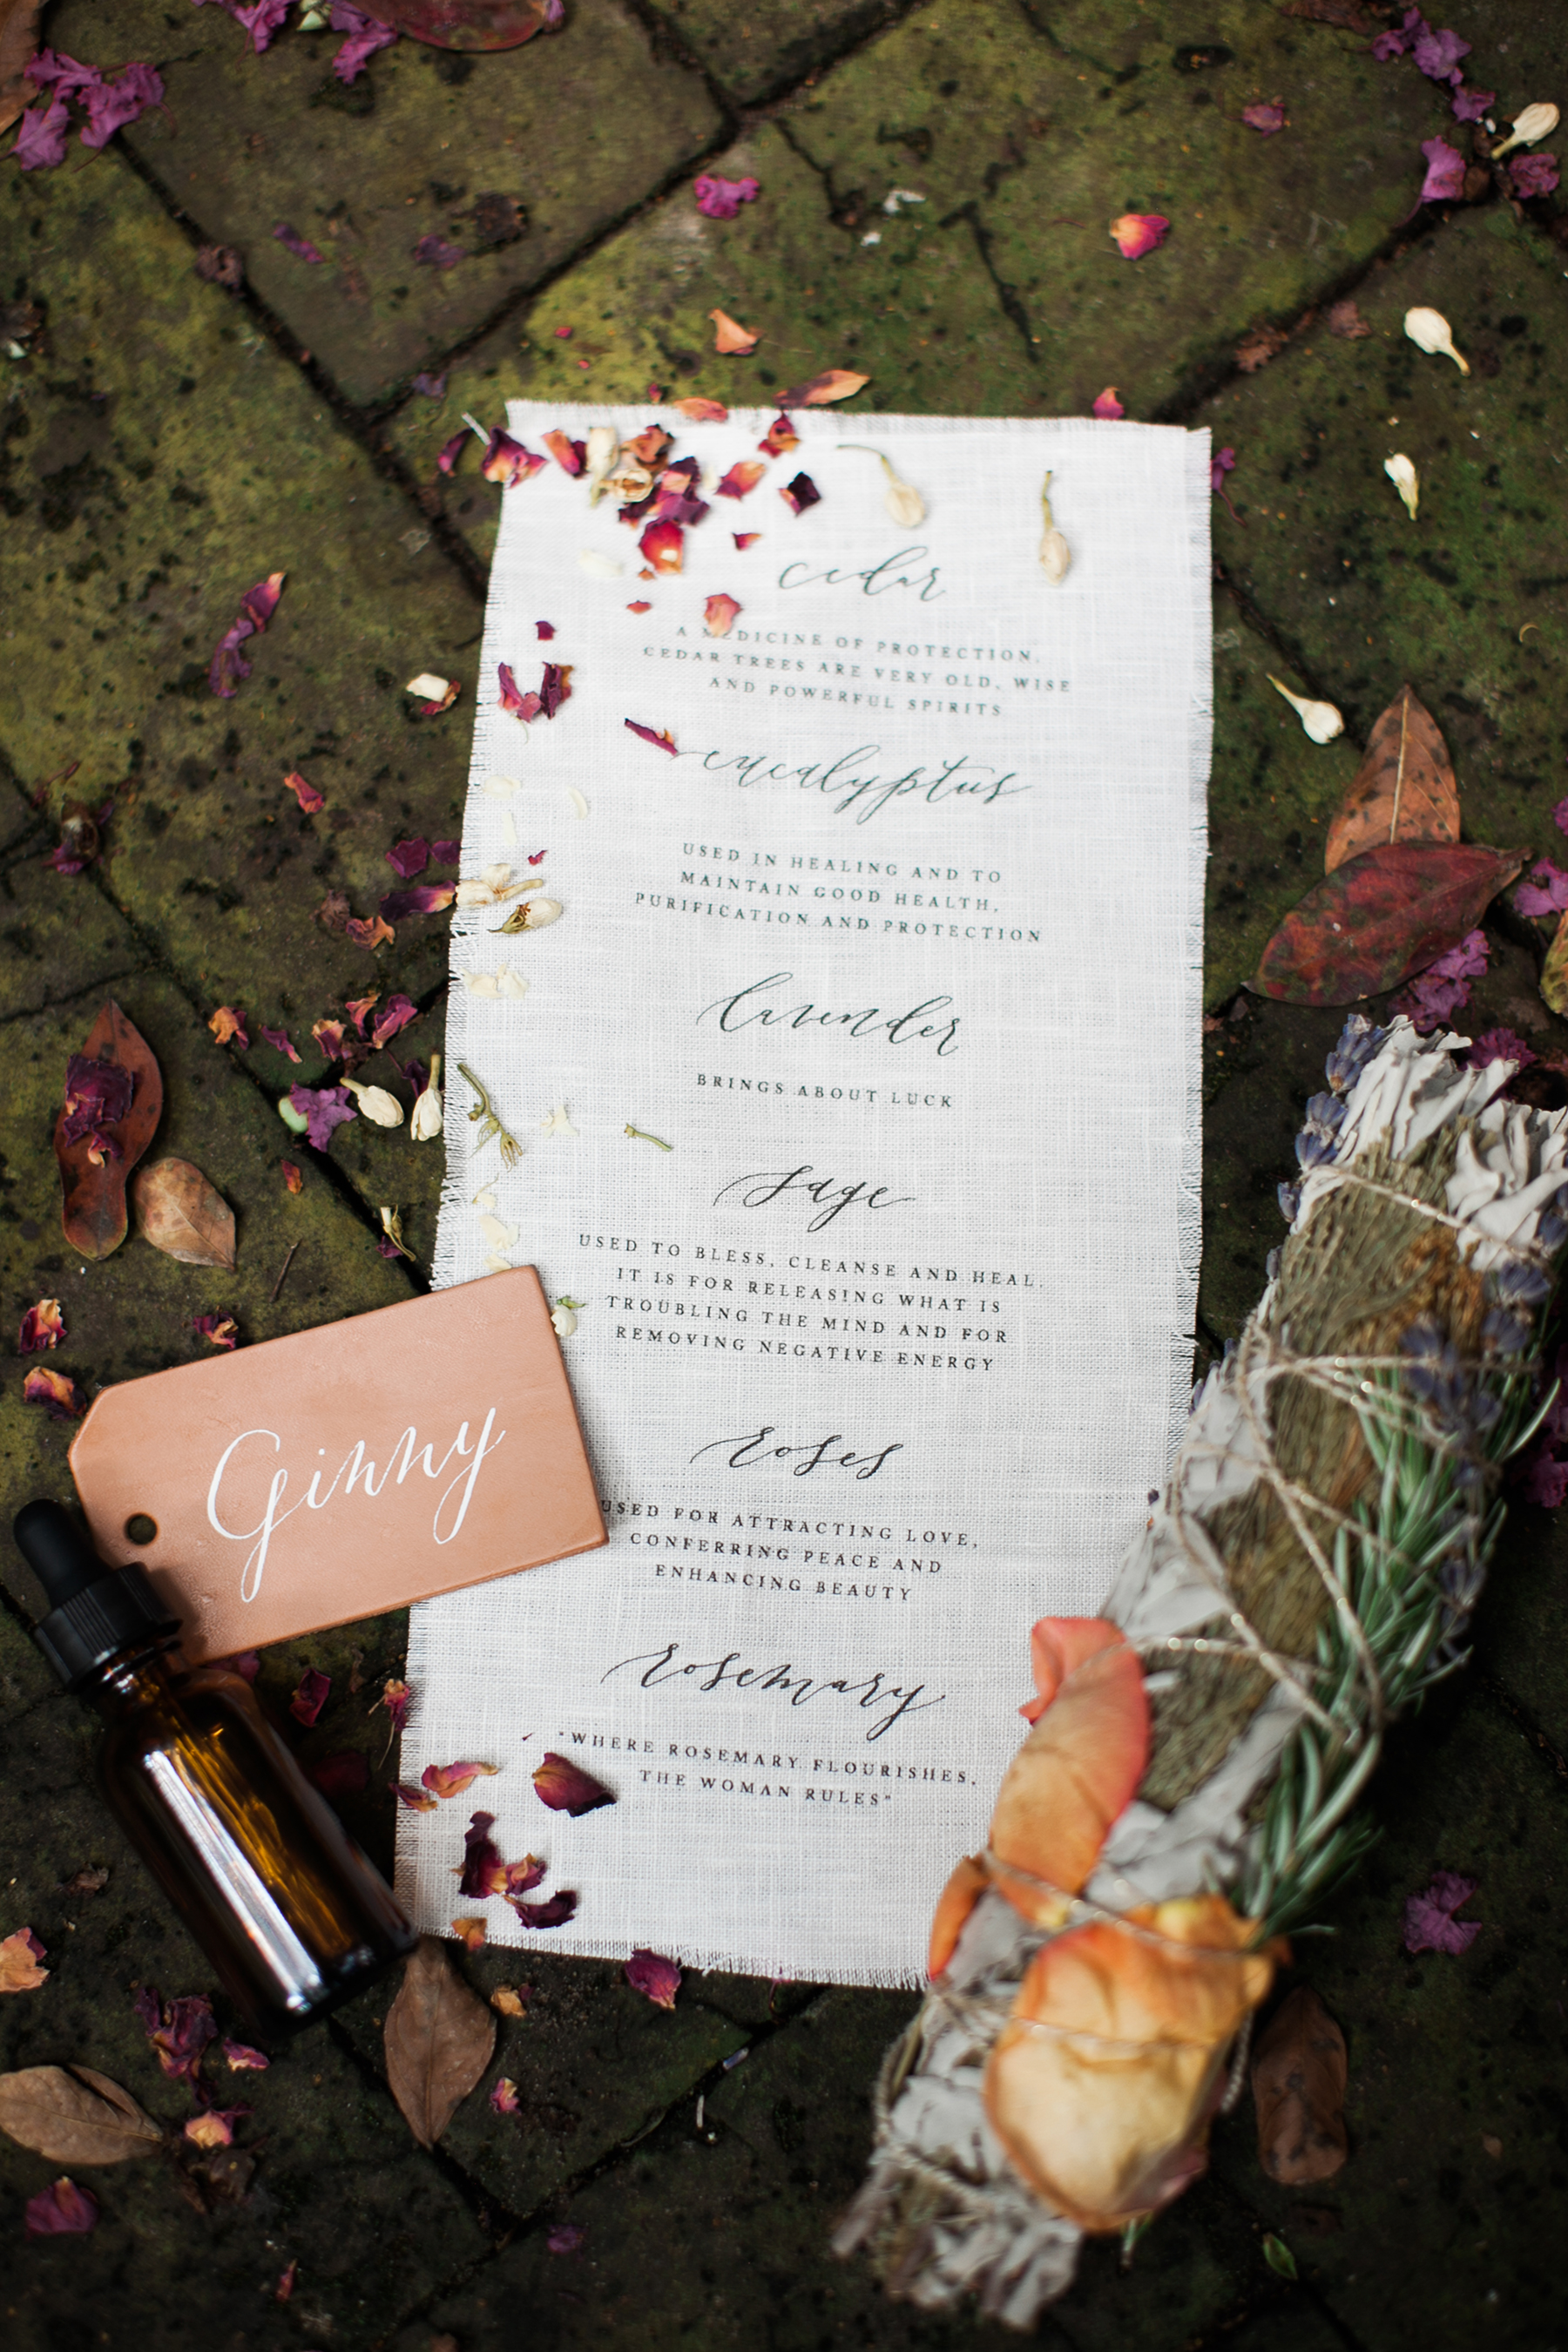 22 Seasonal Ideas You'll Want to Copy for Your Fall Bridal Shower